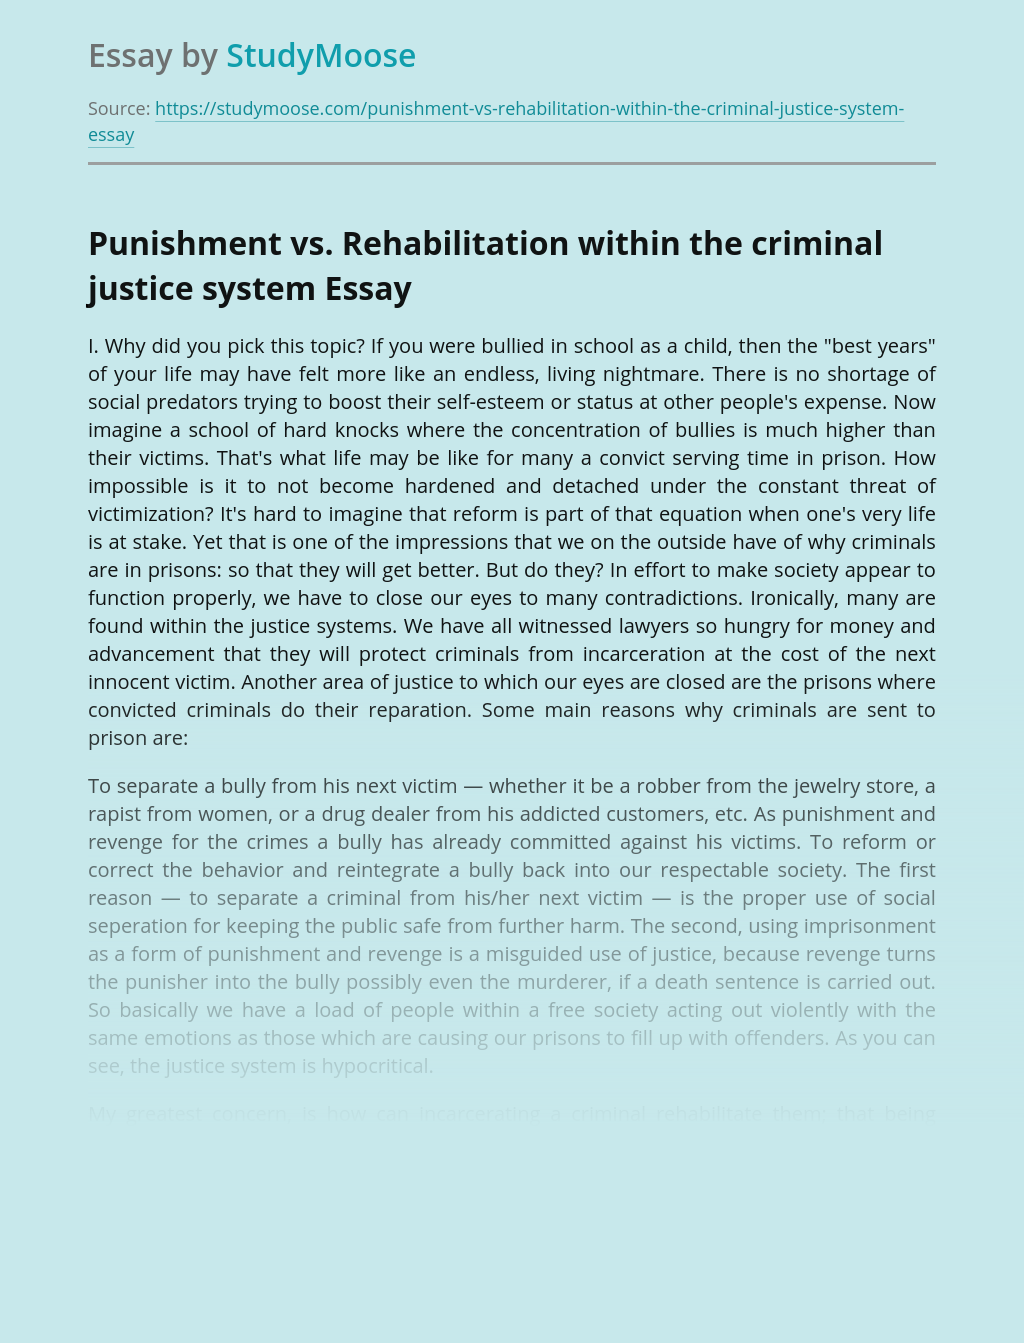 Punishment vs. Rehabilitation within the criminal justice system